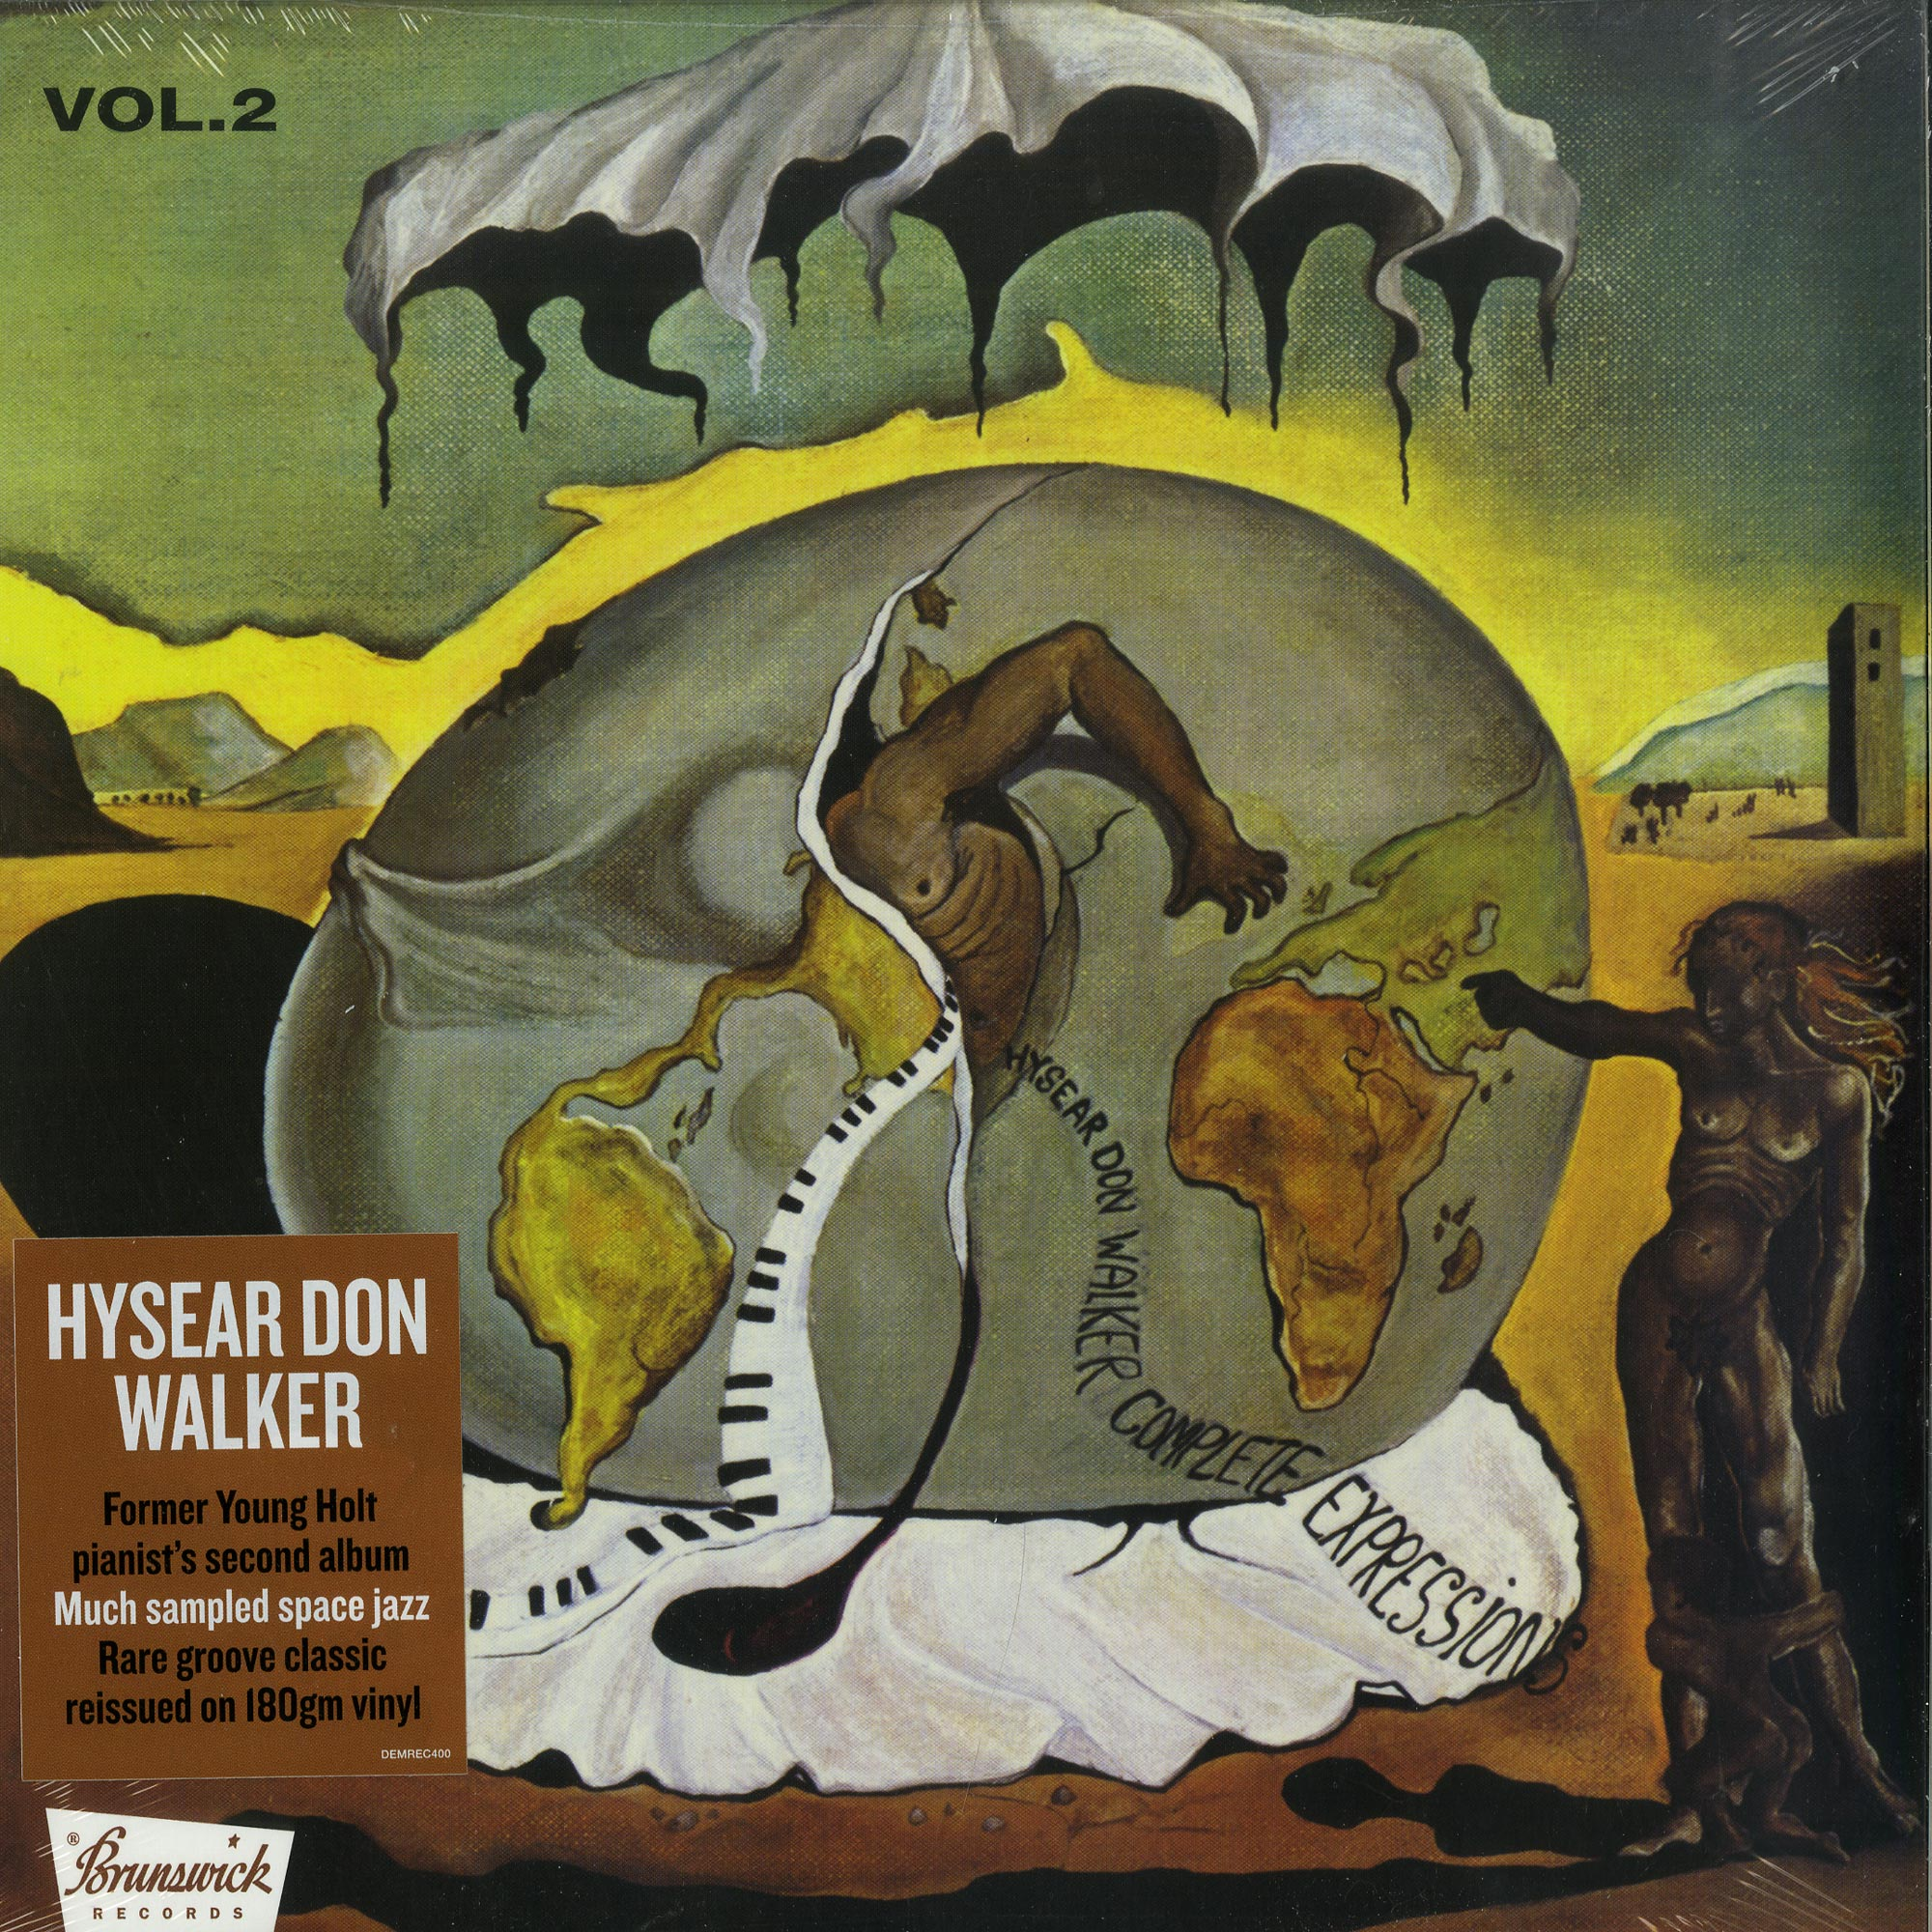 Hysear Don Walker - COMPLETE EXPRESSIONS VOL. 2